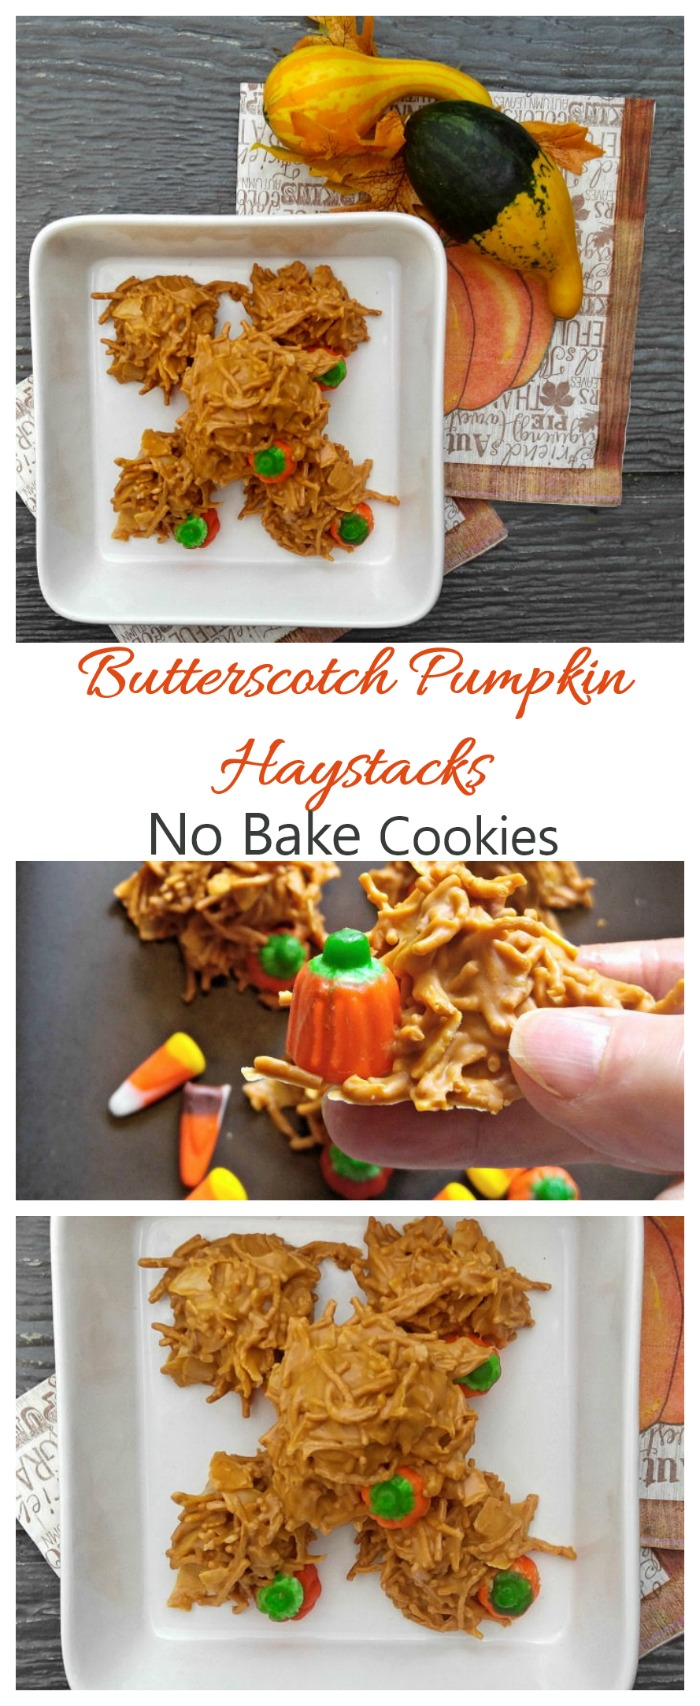 Pumpkin Haystack Cookies - Halloween Butterscotch Haystacks